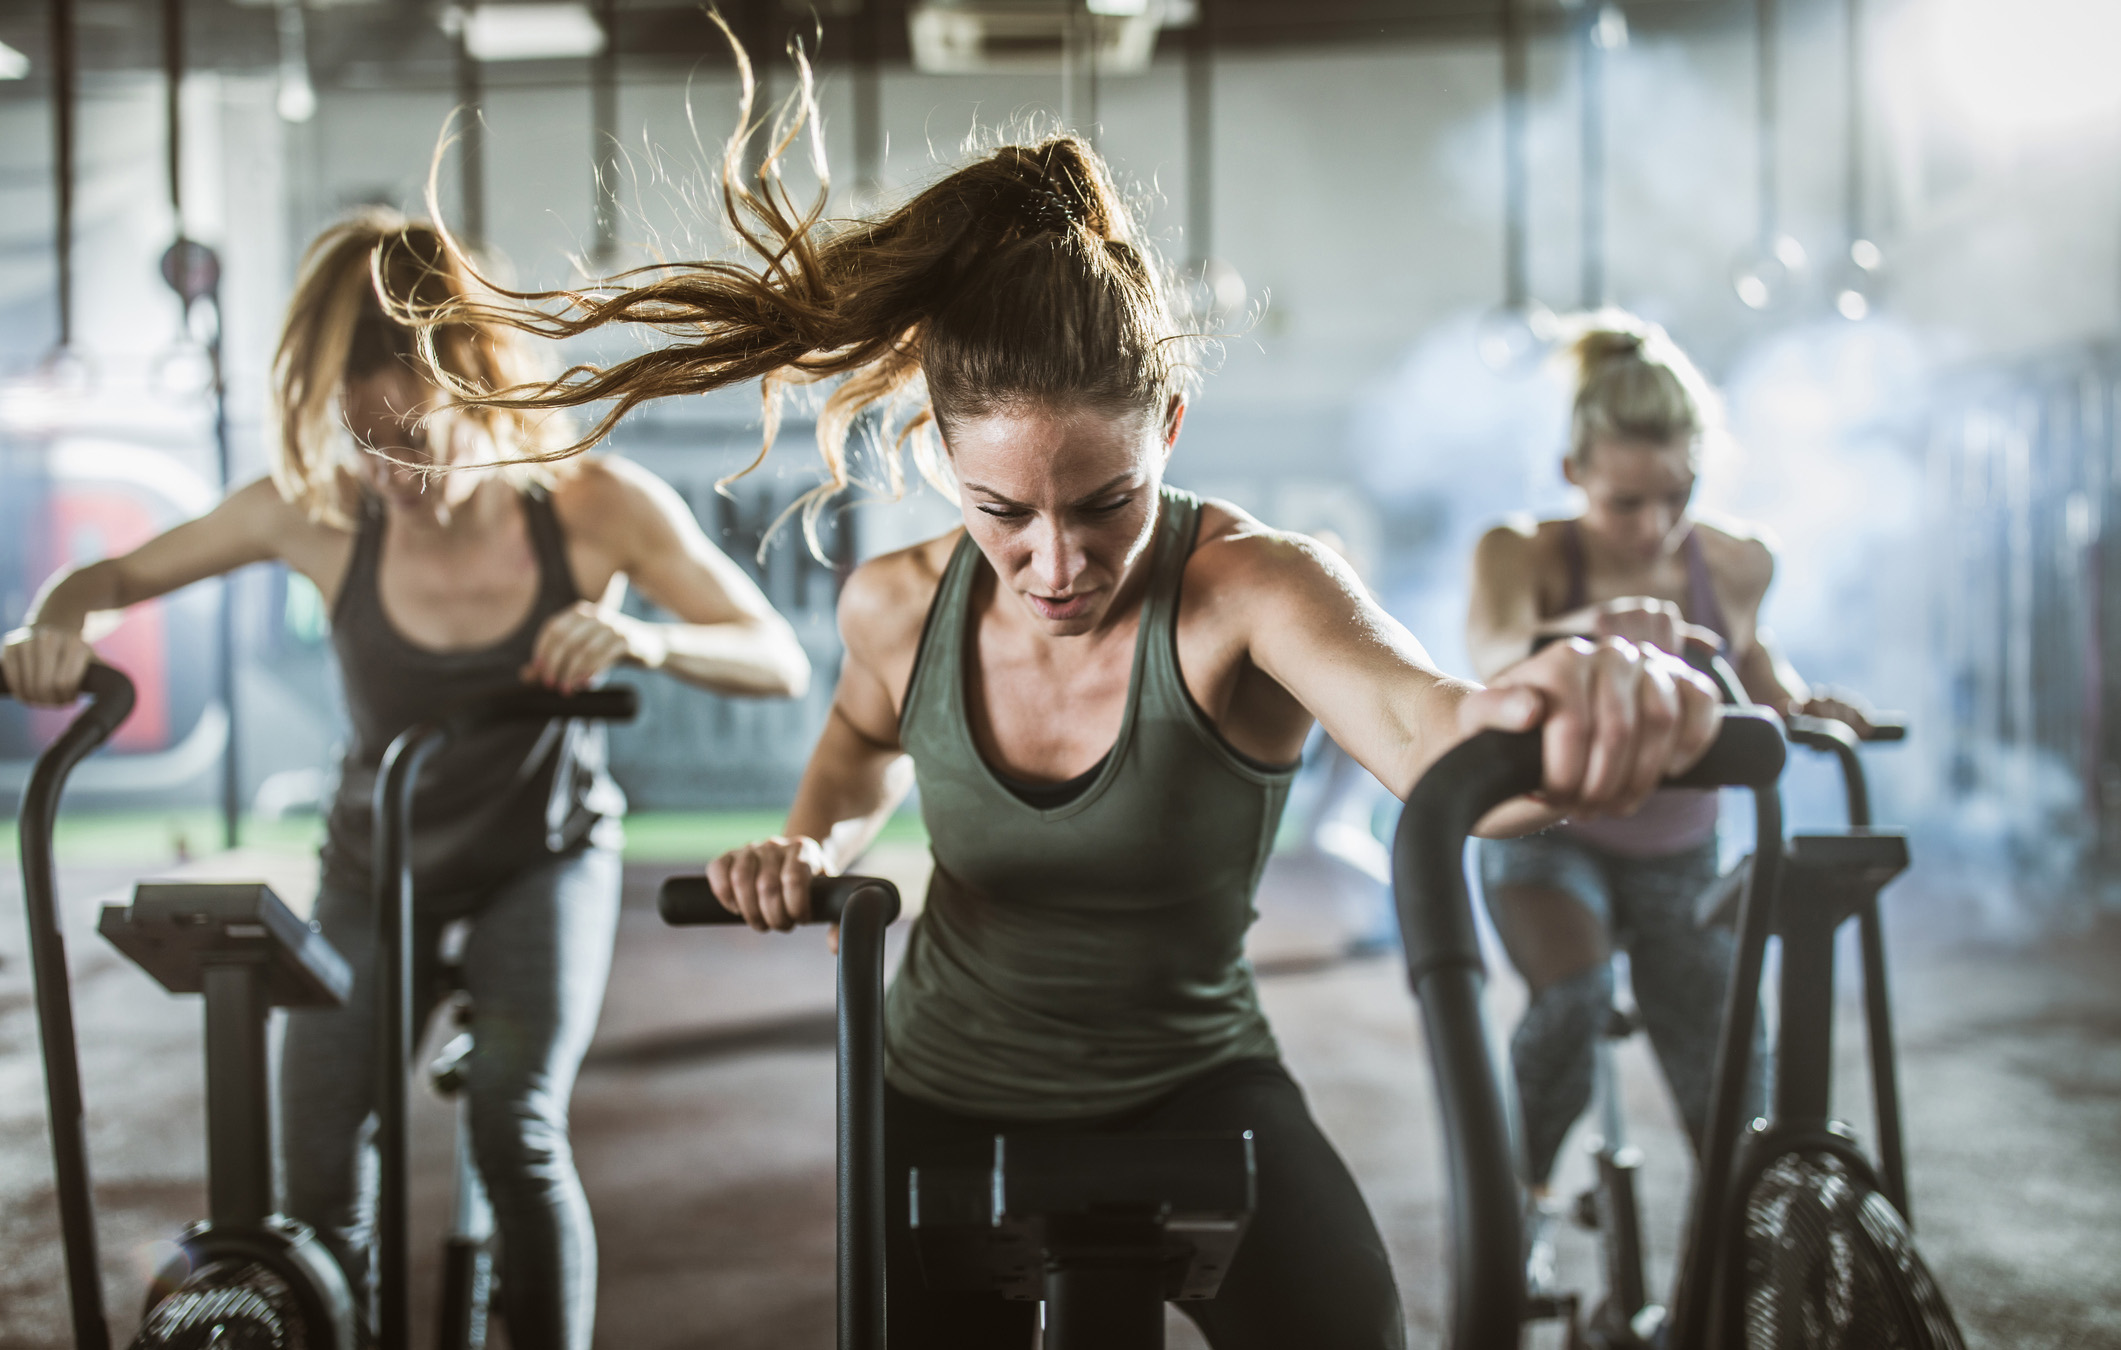 What To Do When You Have 'No Time' To Workout